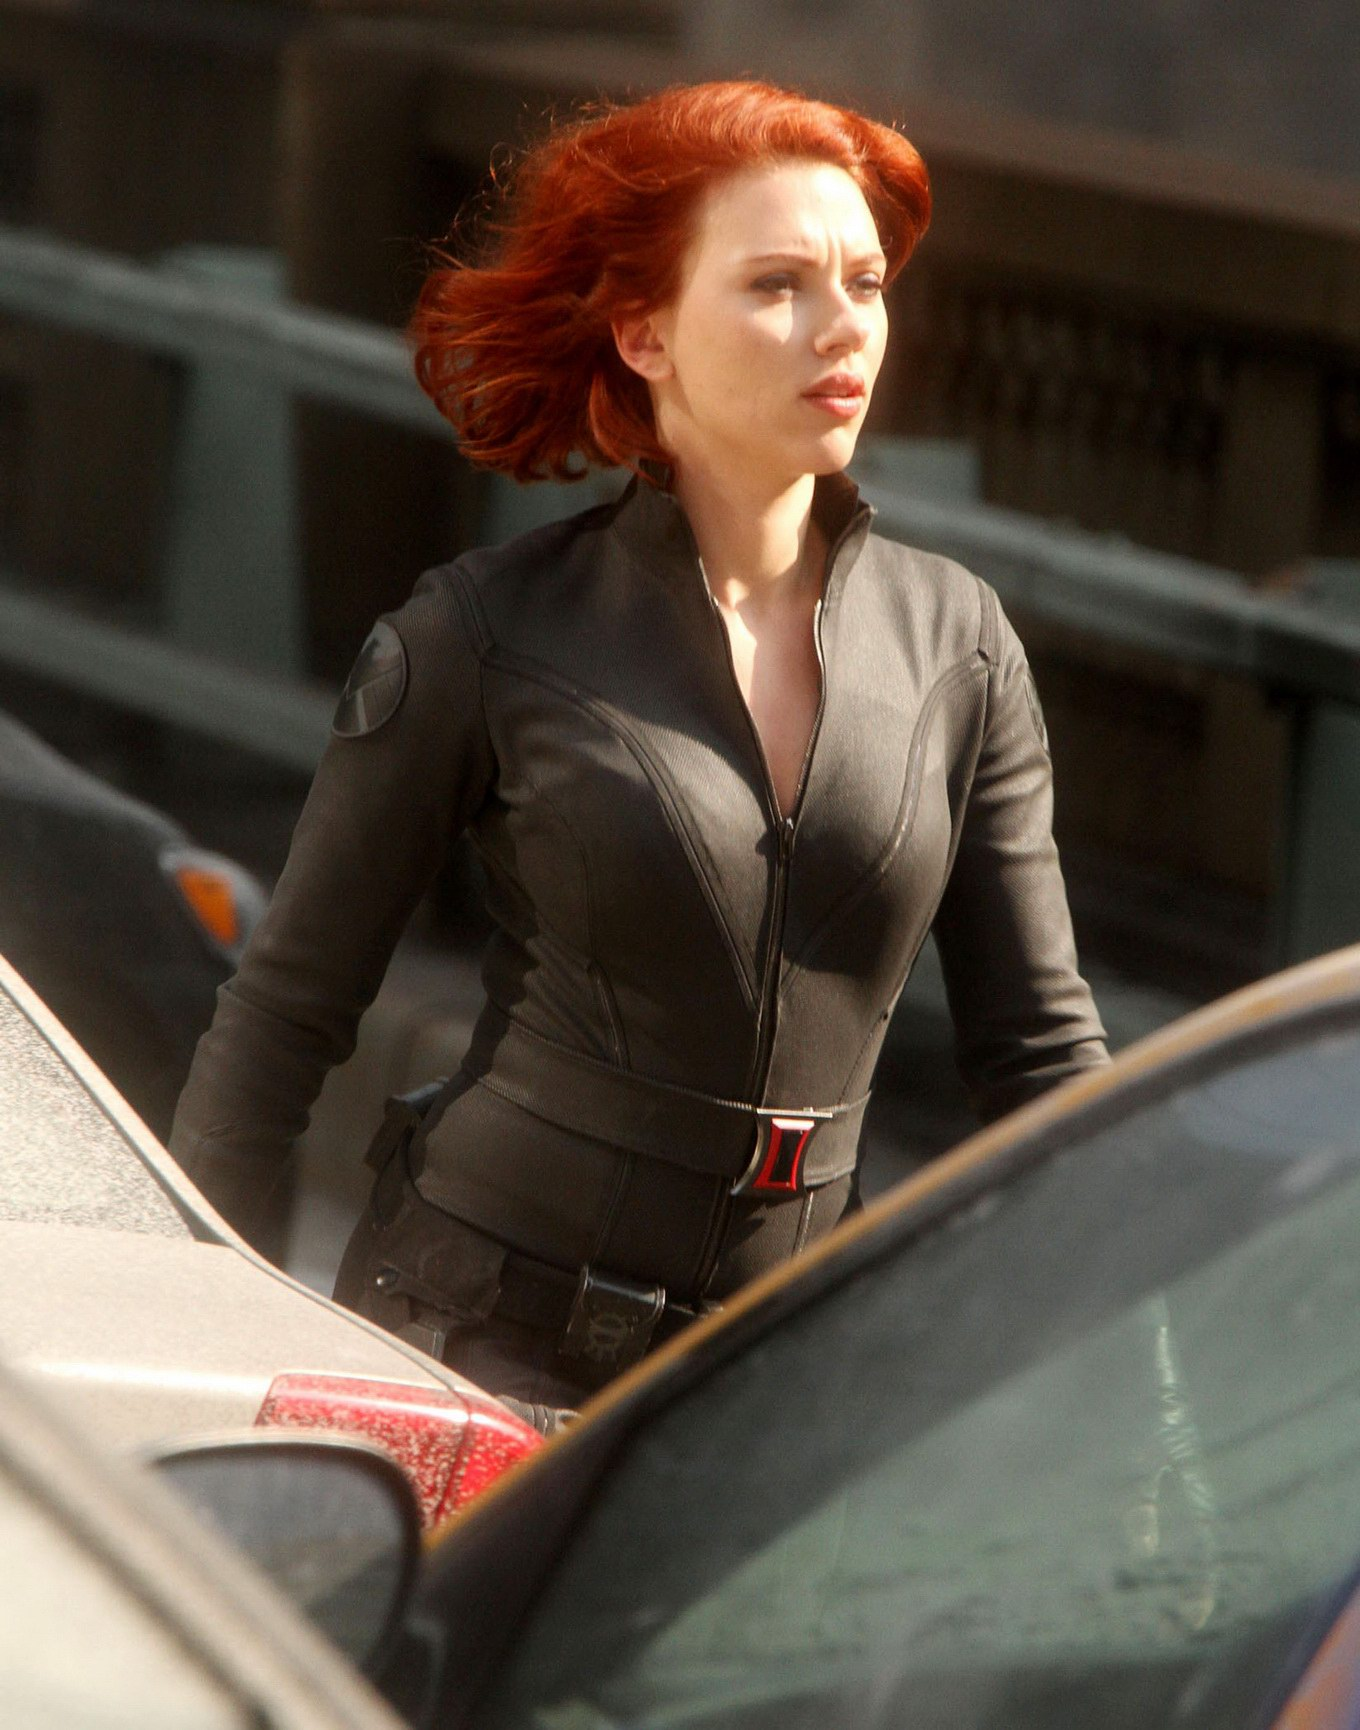 Scarlett johansson leaked personal nude pics made by the cell phone